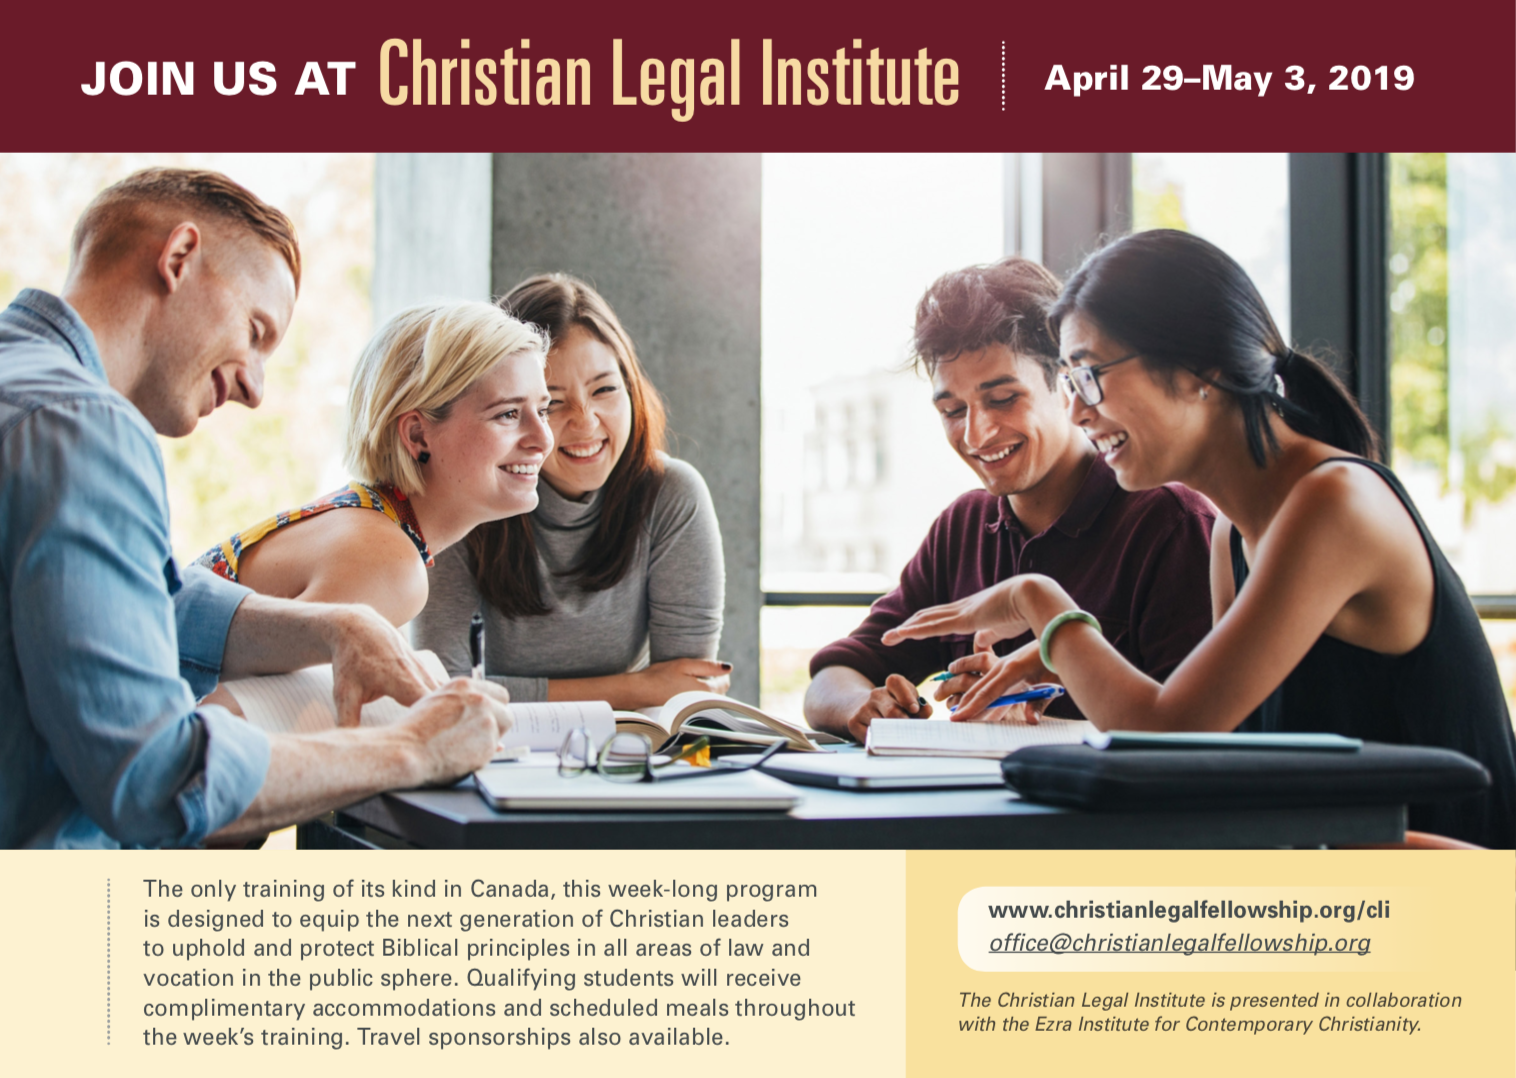 Registration  is now closed for the 2019 Christian Legal Institute. Stay tuned for details on next year's CLI!